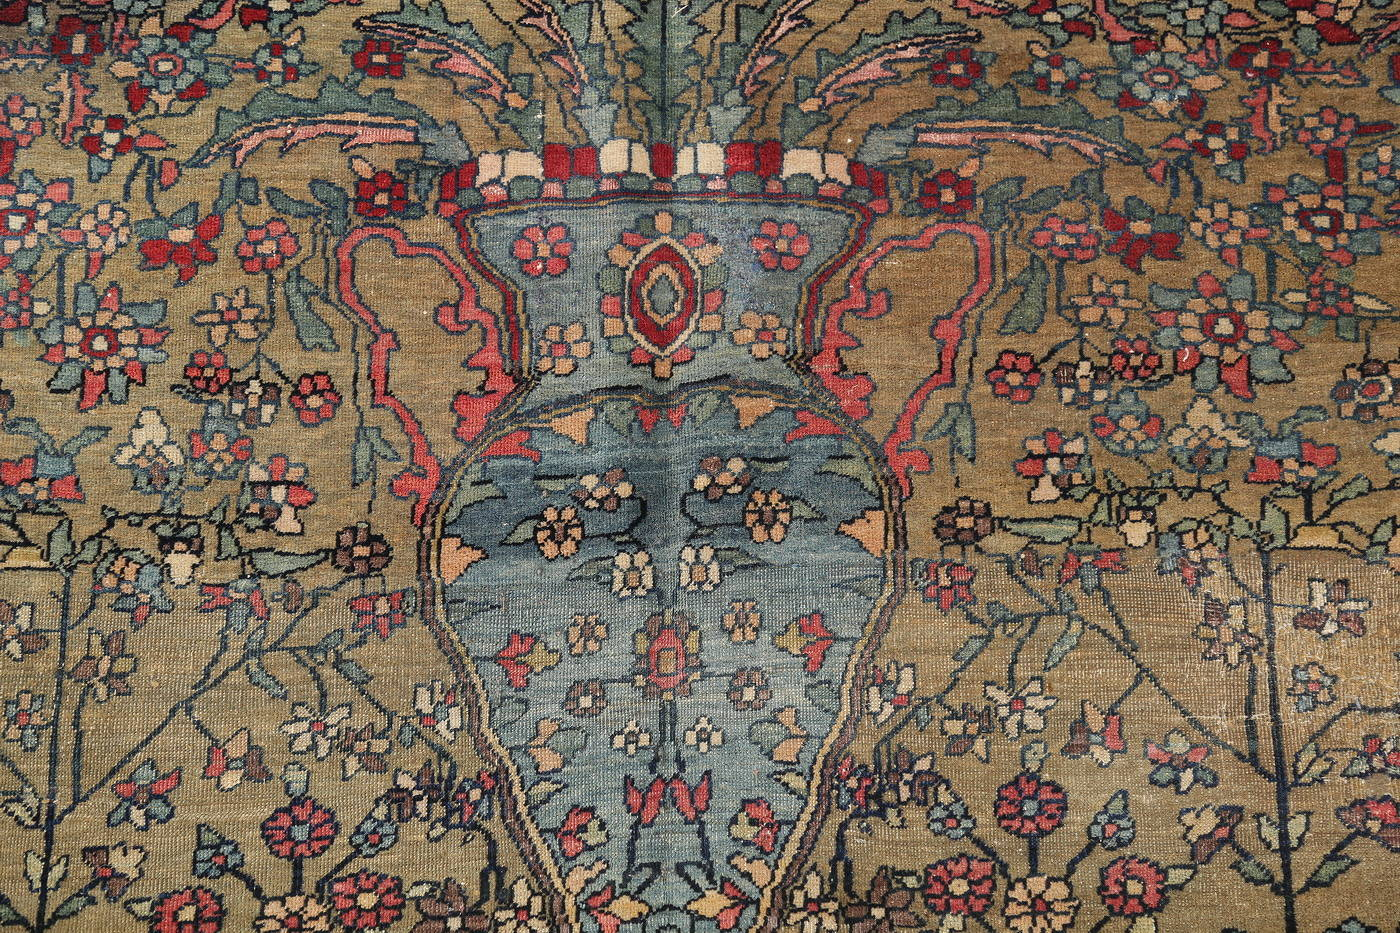 Antique Green Pictorial Kashan Mohtasham Persian Area Rug 4x6 image 10